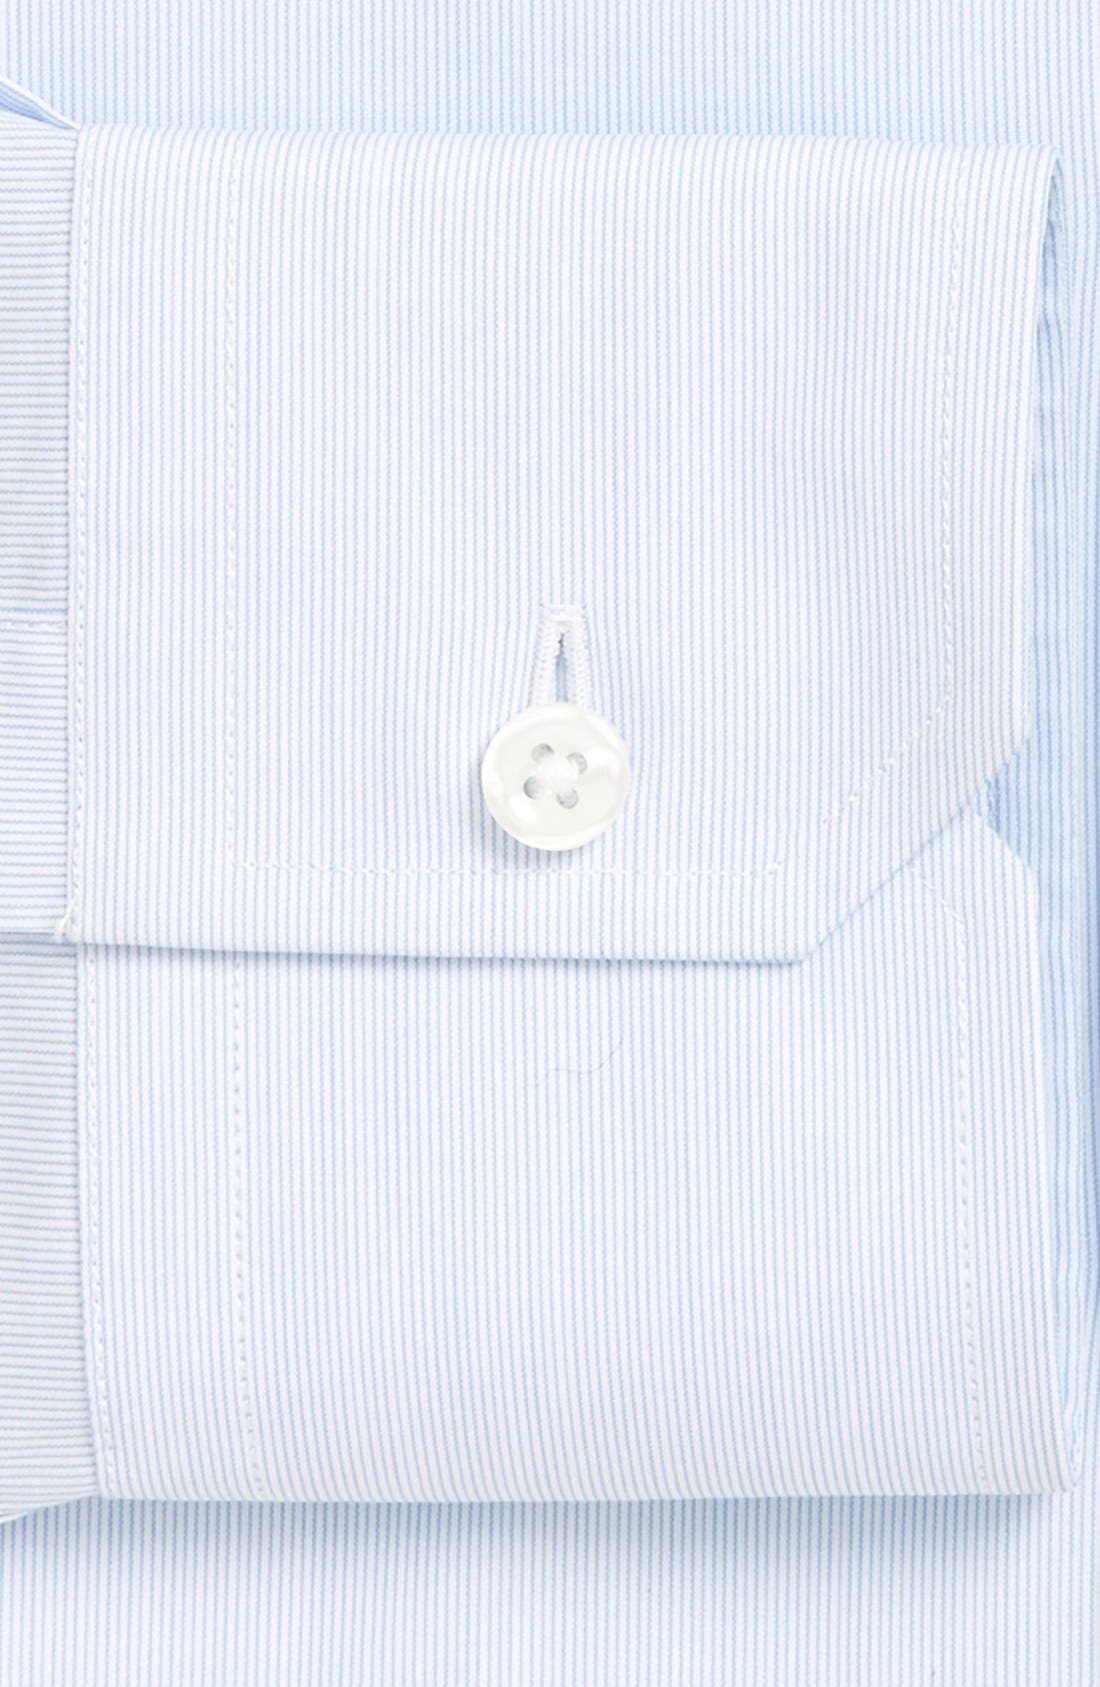 'Elan' Trim Fit Stripe Dress Shirt,                             Alternate thumbnail 2, color,                             Blue Mini Stripe